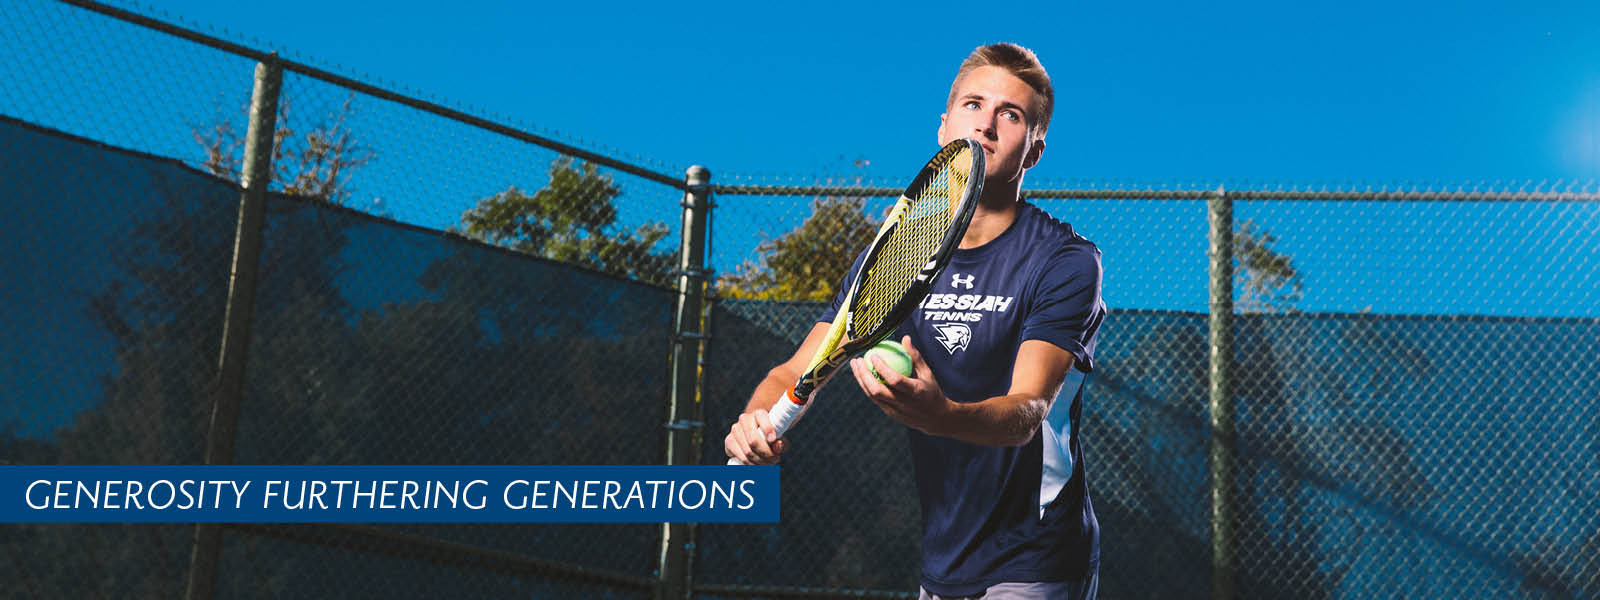 Men's Tennis Team header